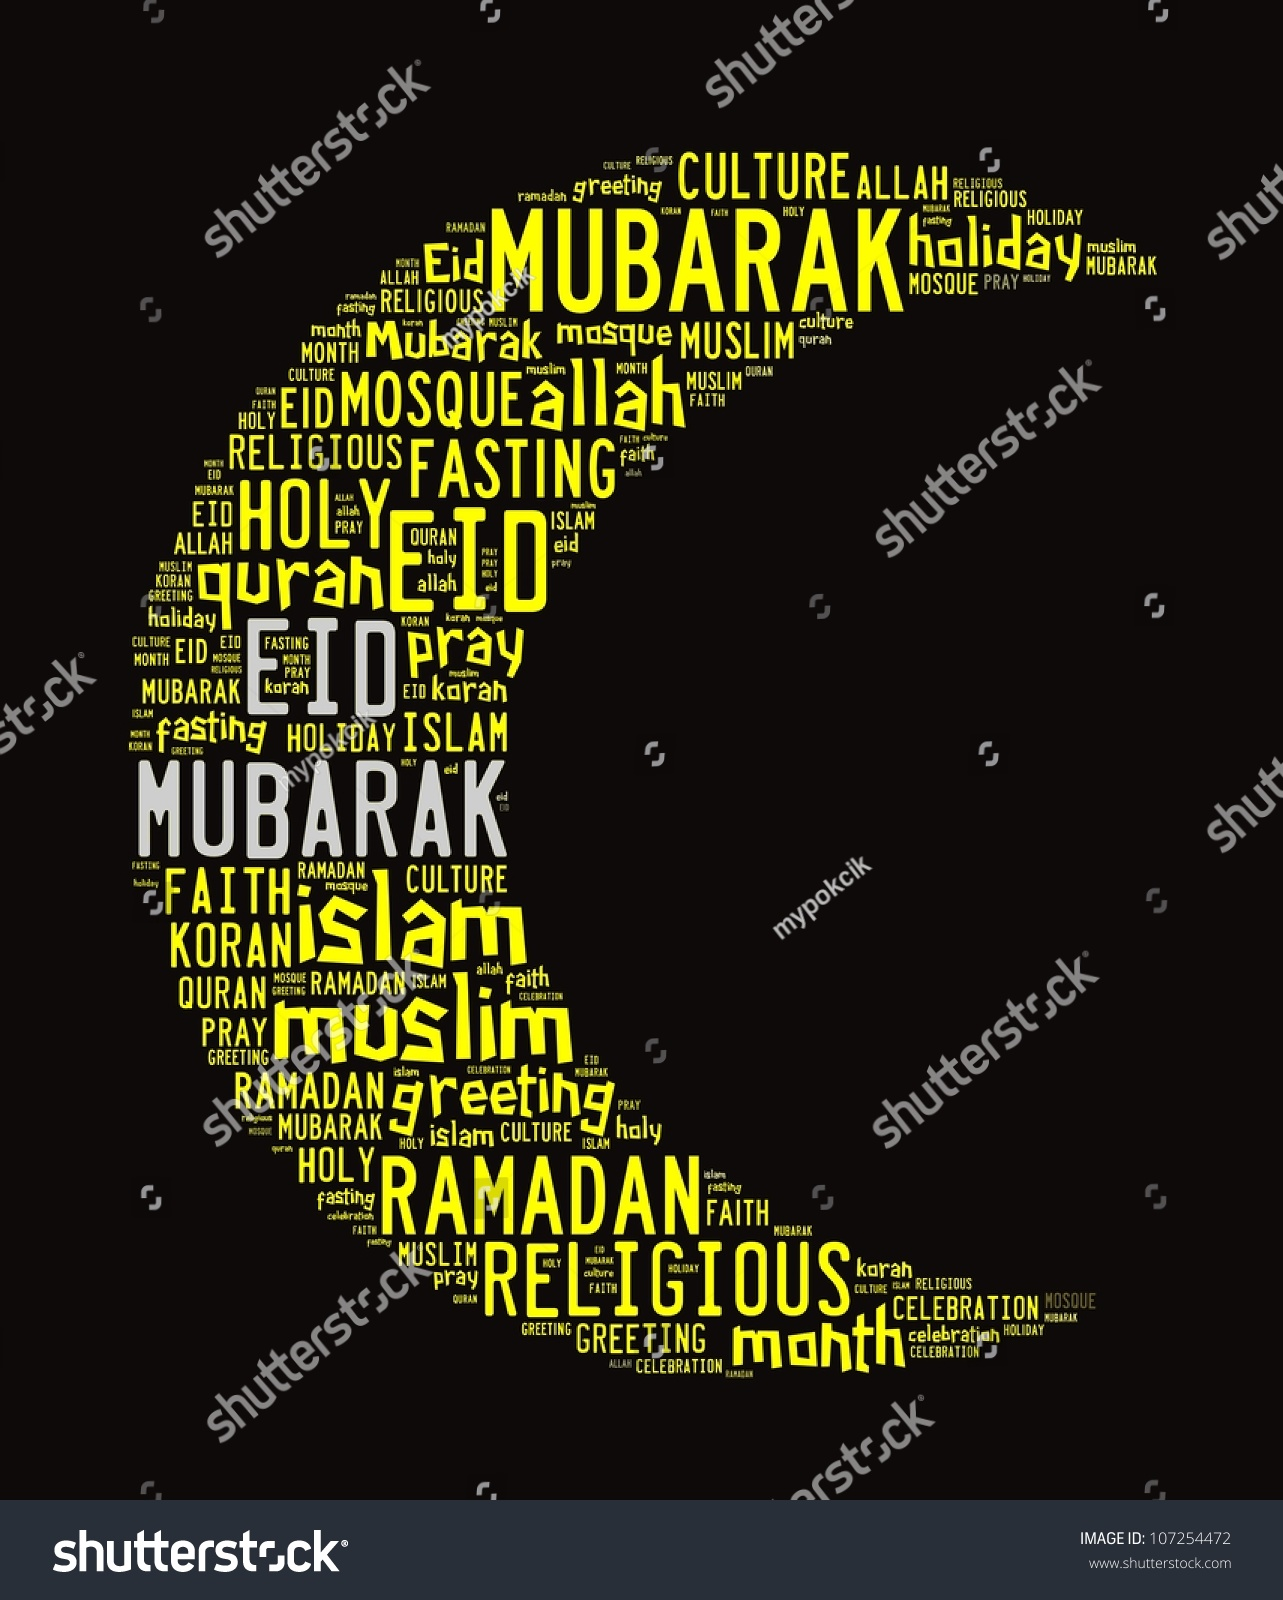 Eid mubarak greetings word collage stock illustration 107254472 eid mubarak greetings in word collage kristyandbryce Image collections